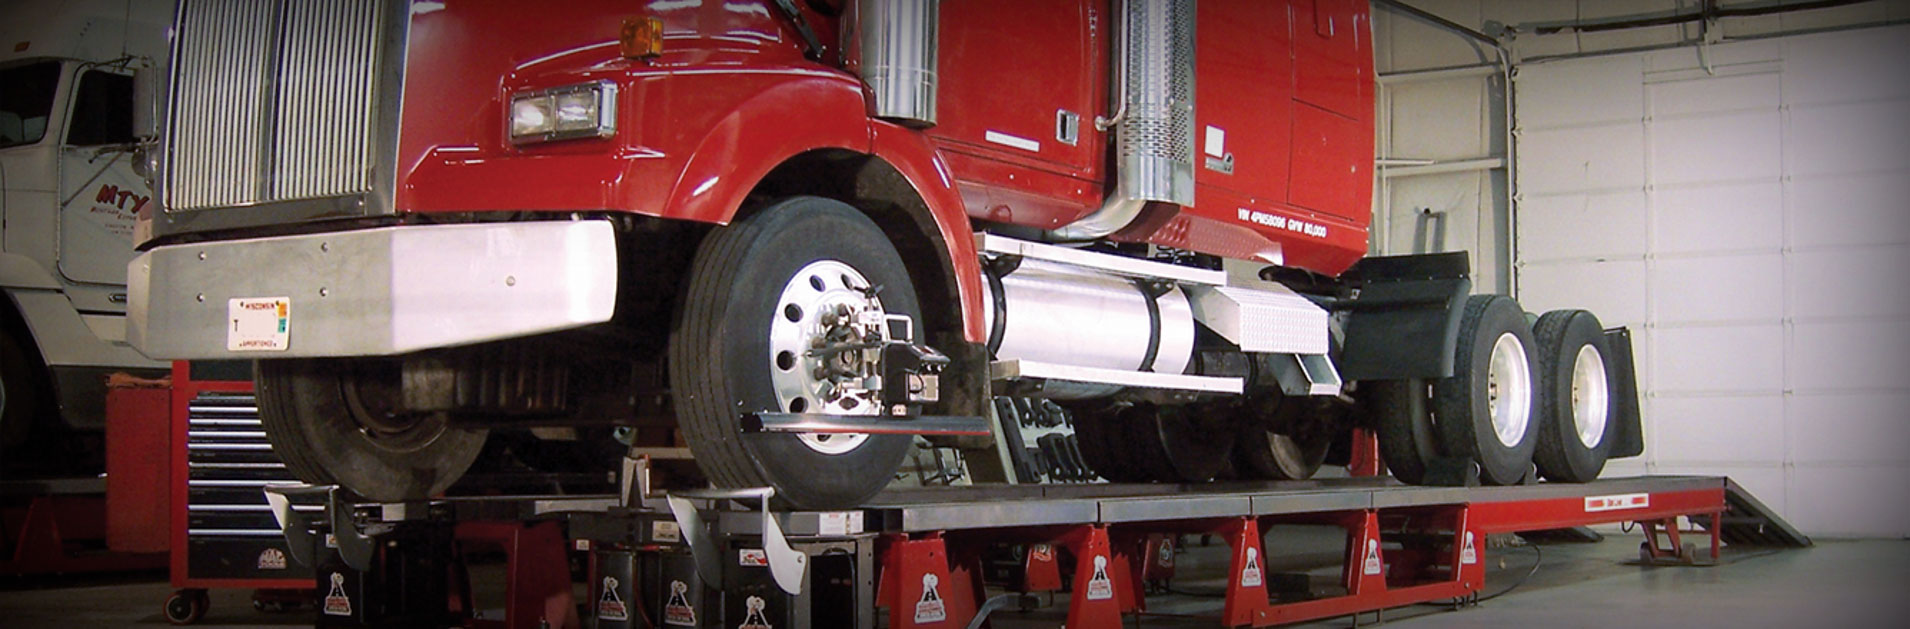 Truck and trailer alignments at the US 281 Truck And Trailer Services LLC workshop in Edinburg.